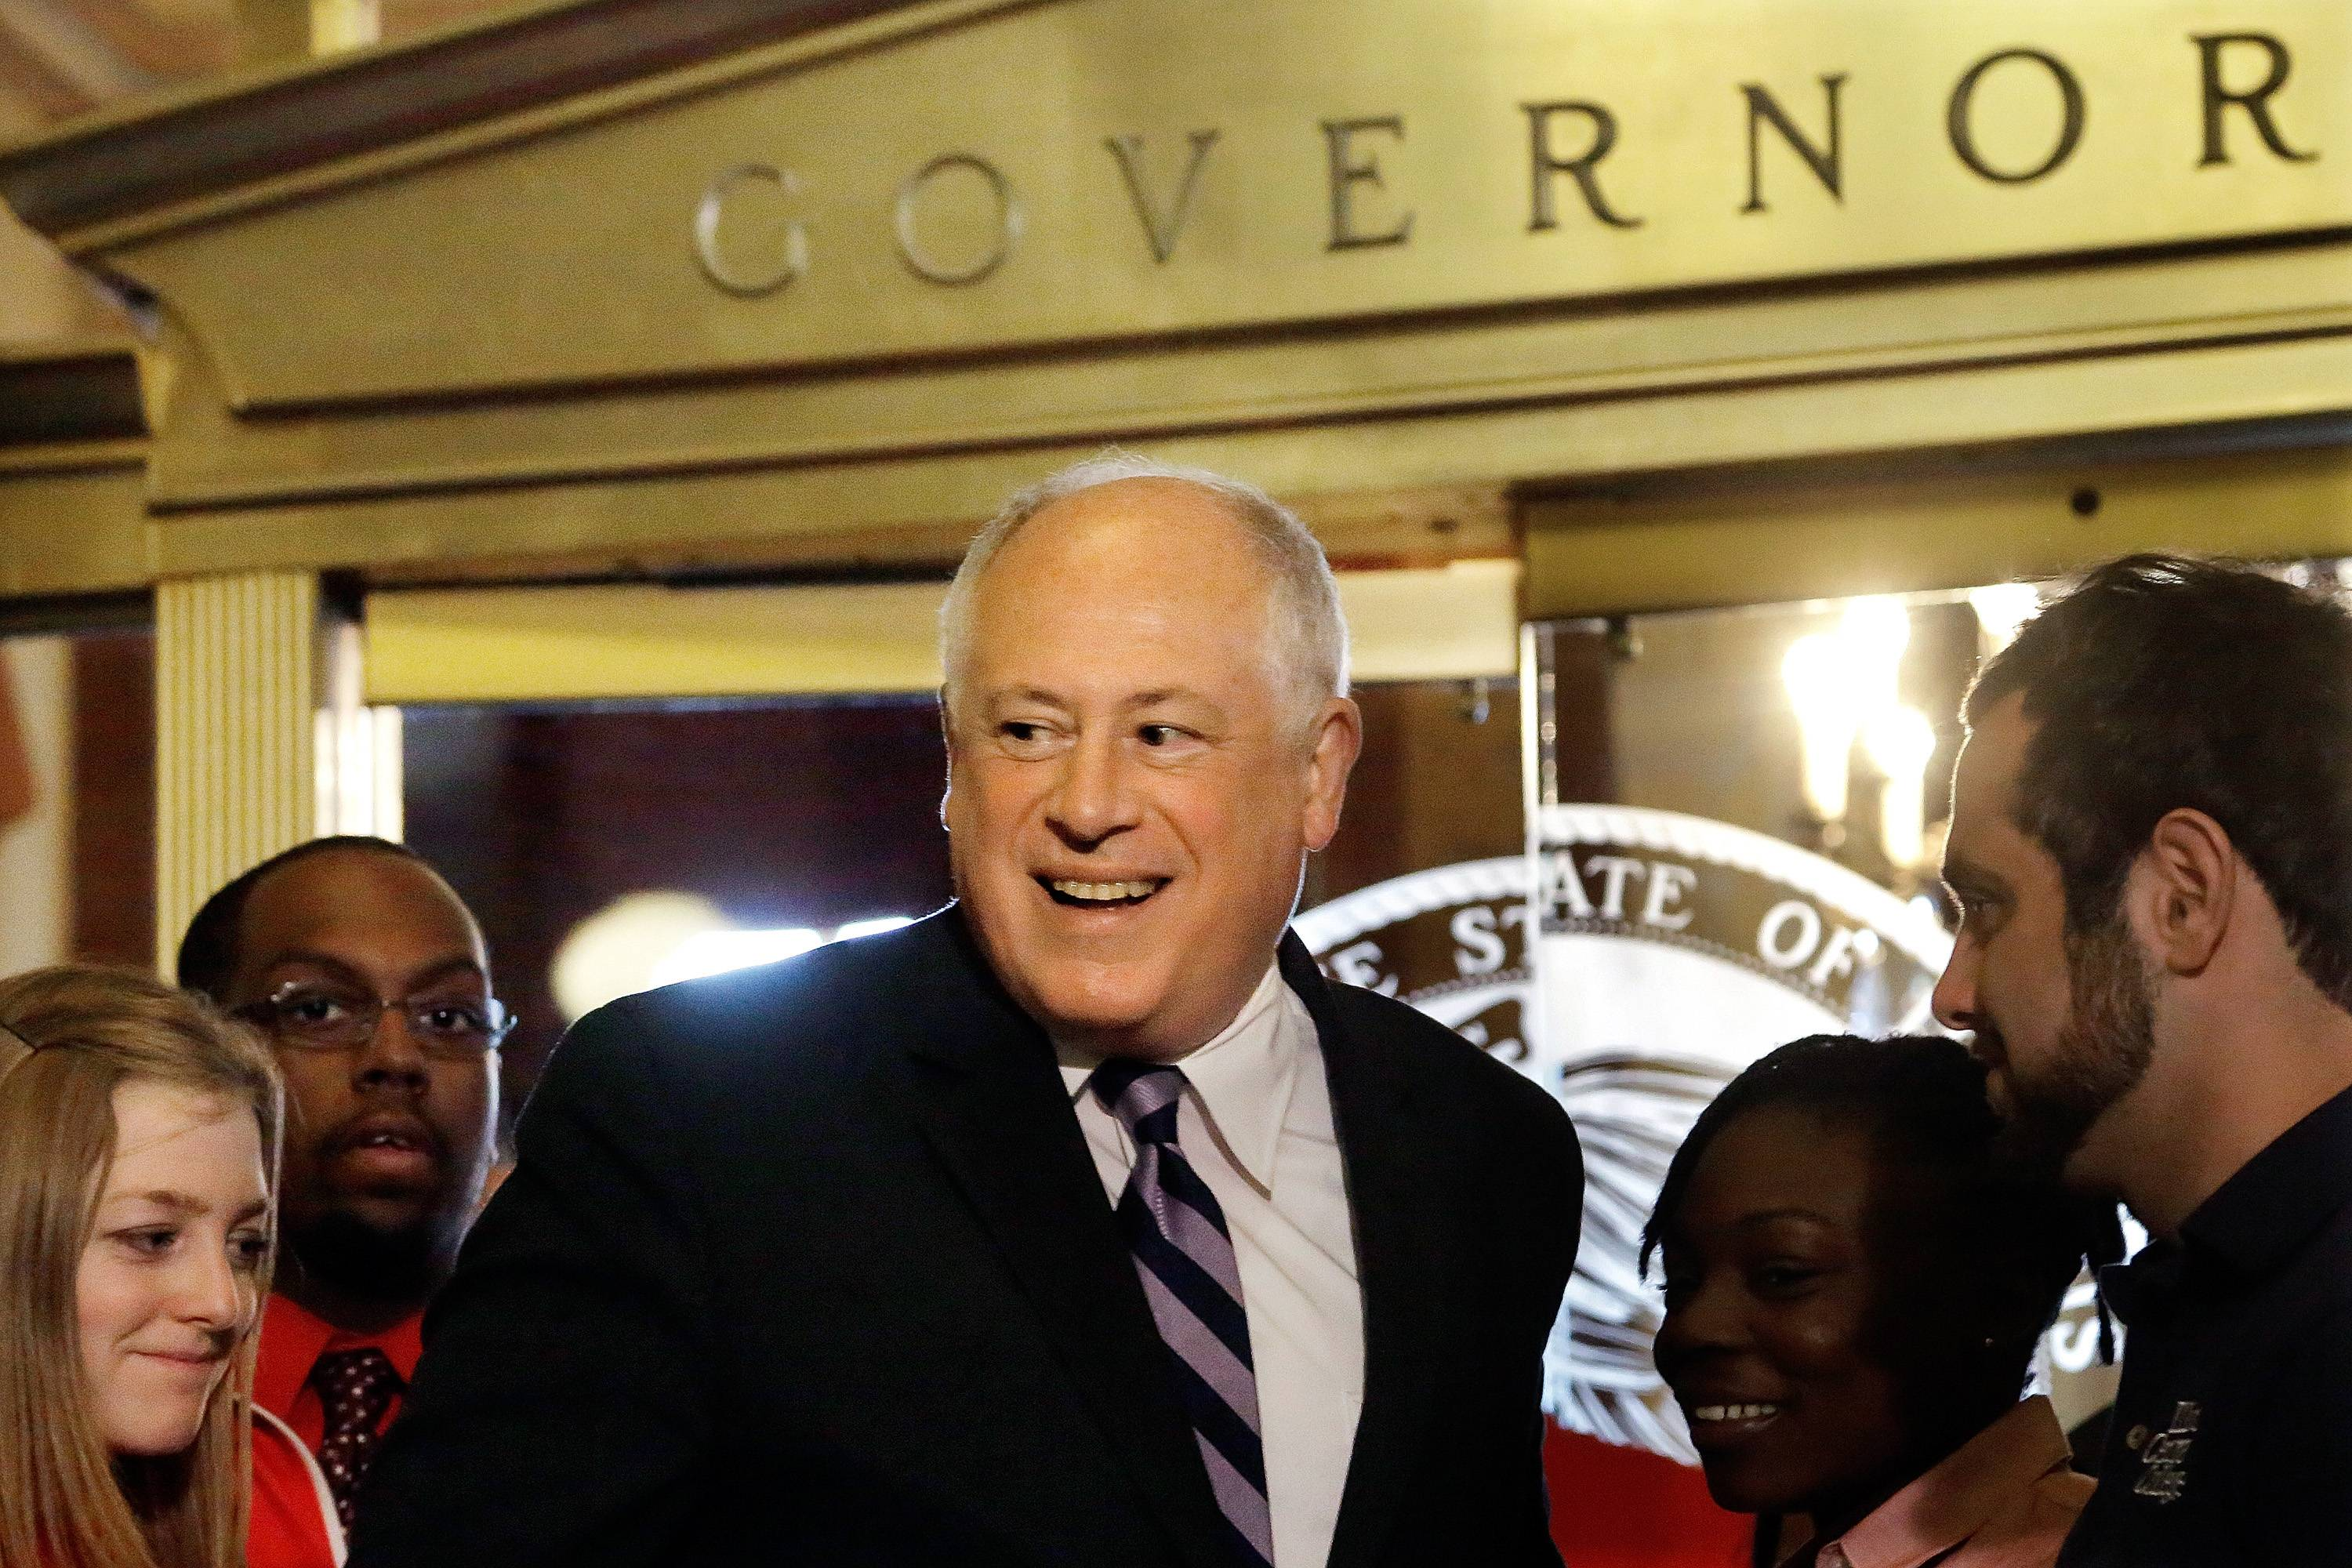 Gov. Pat Quinn says he has cut money for renovations to the state Capitol, which drew criticism last year over the hefty price tag. He also said he has directed state agencies to made additional reductions, including selling nearly half of the state's aircraft.